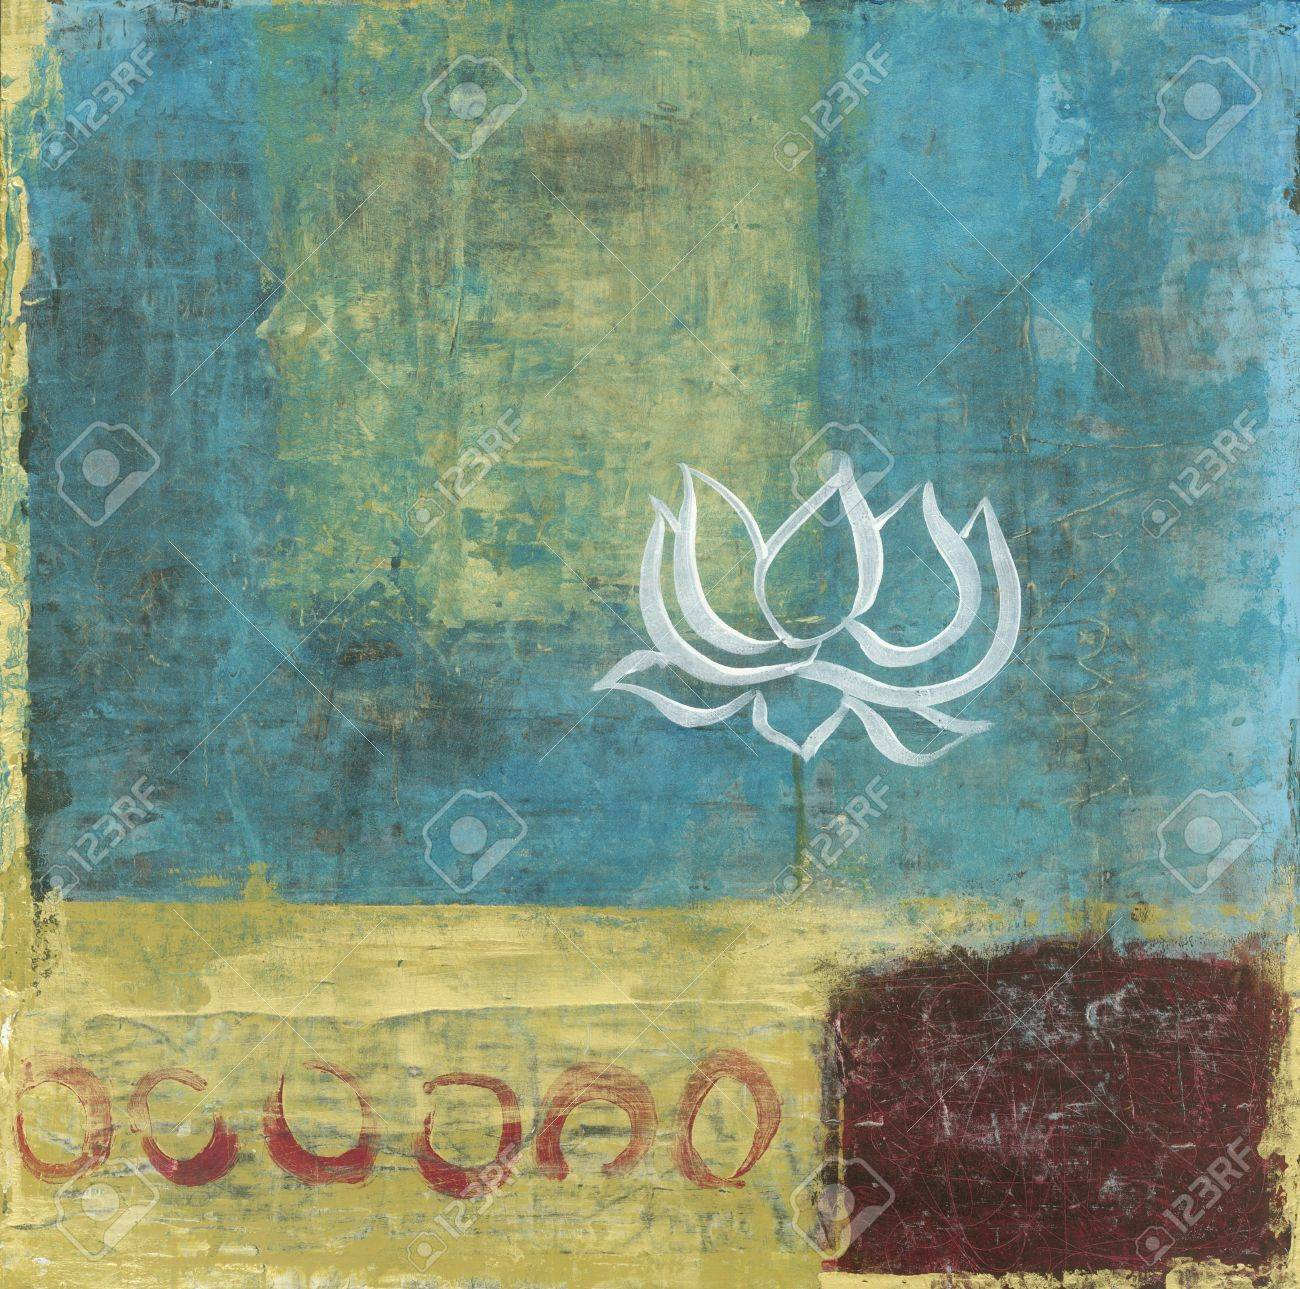 Abstract background painting with a single simple lous blossom - 17168004